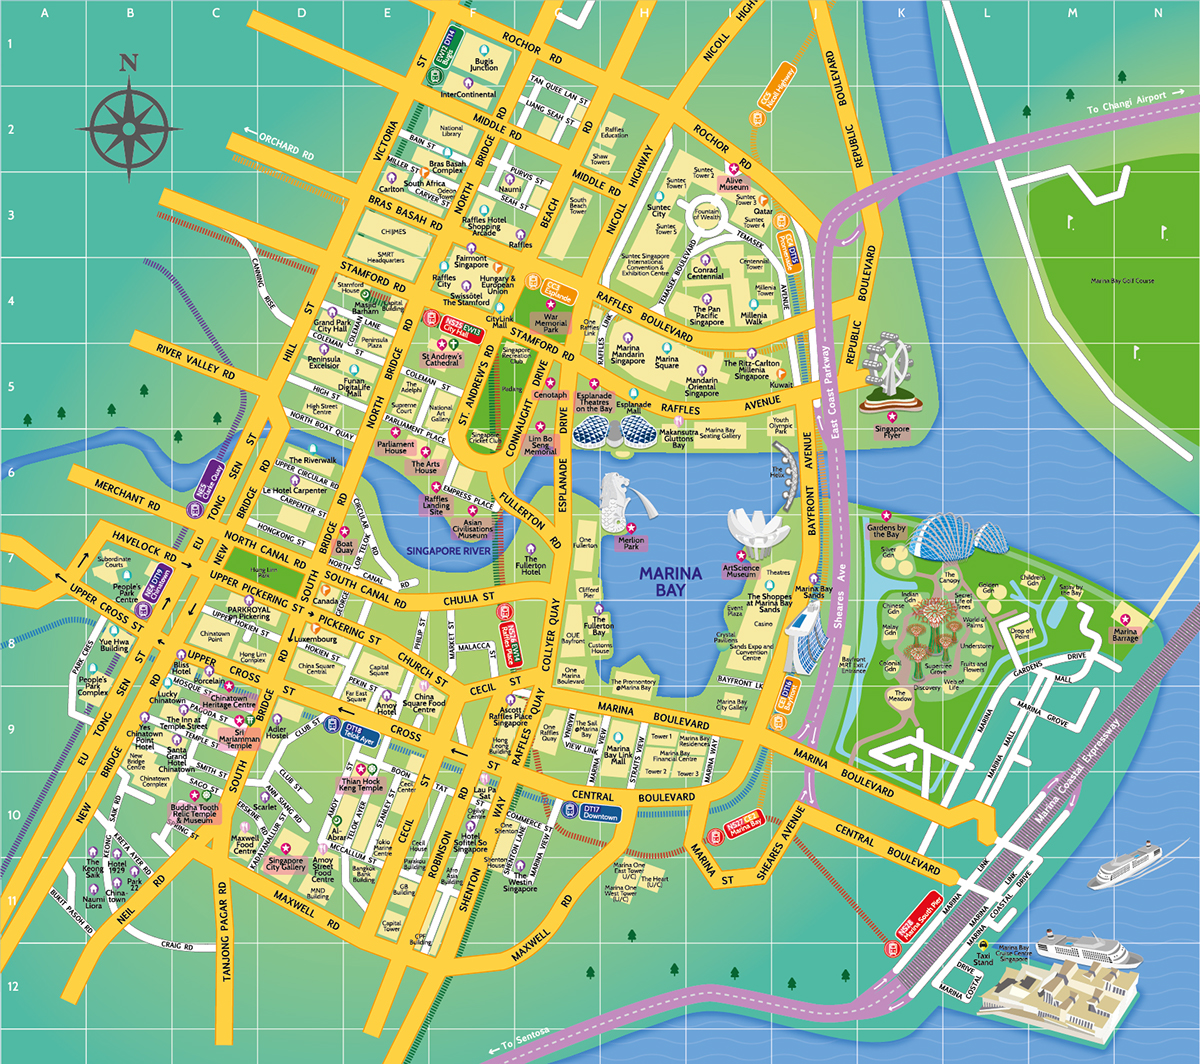 Tourist Map of Marina Bay Singapore on Behance – Tourist Map Of Singapore City